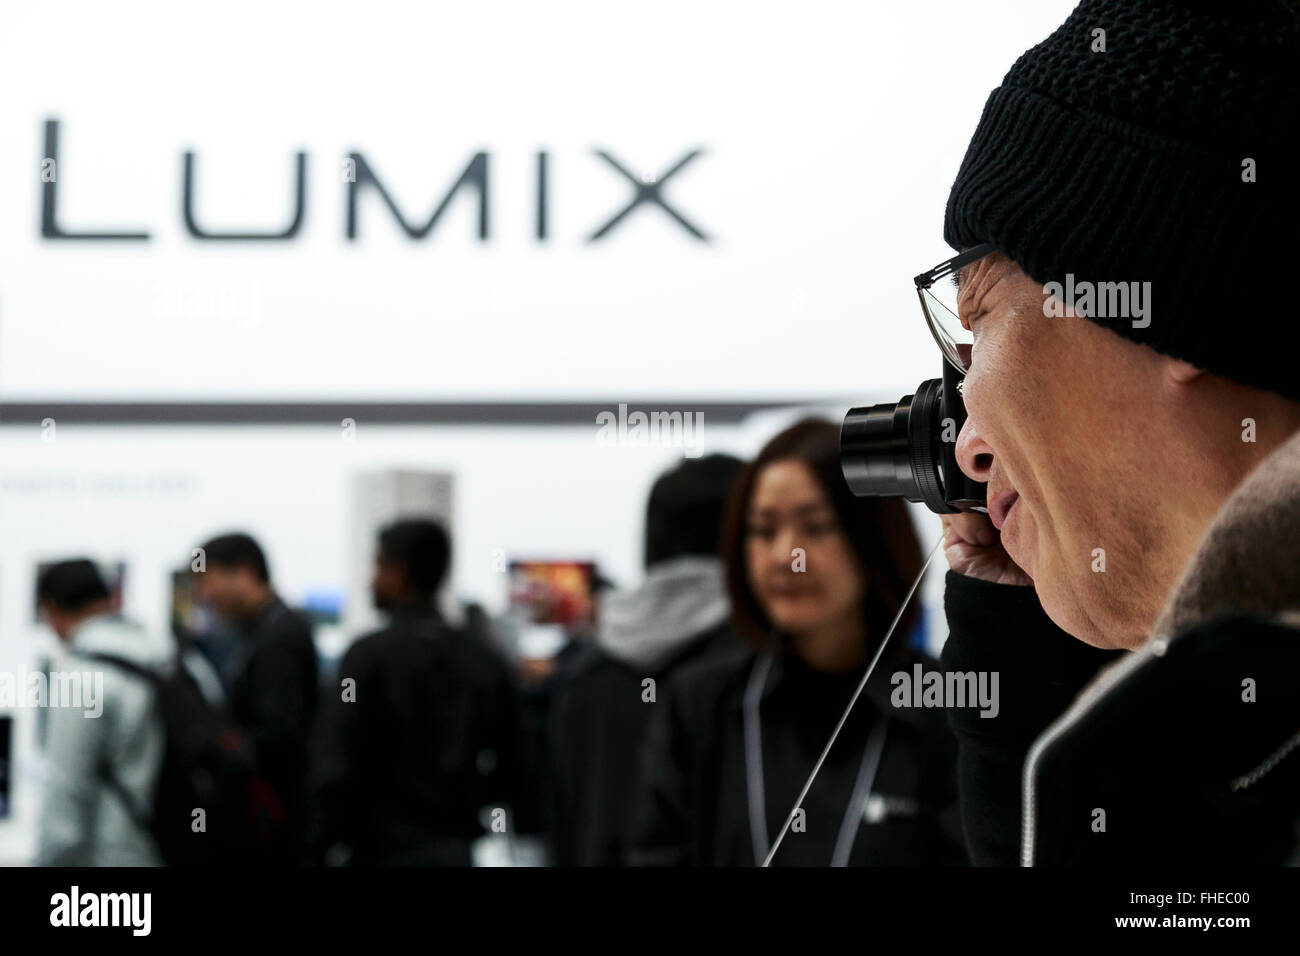 Yokohama, Japan. 25th February, 2016. A visitor tests a Lumix camera at the CP  2016 Camera & Imaging Show on - Stock Image